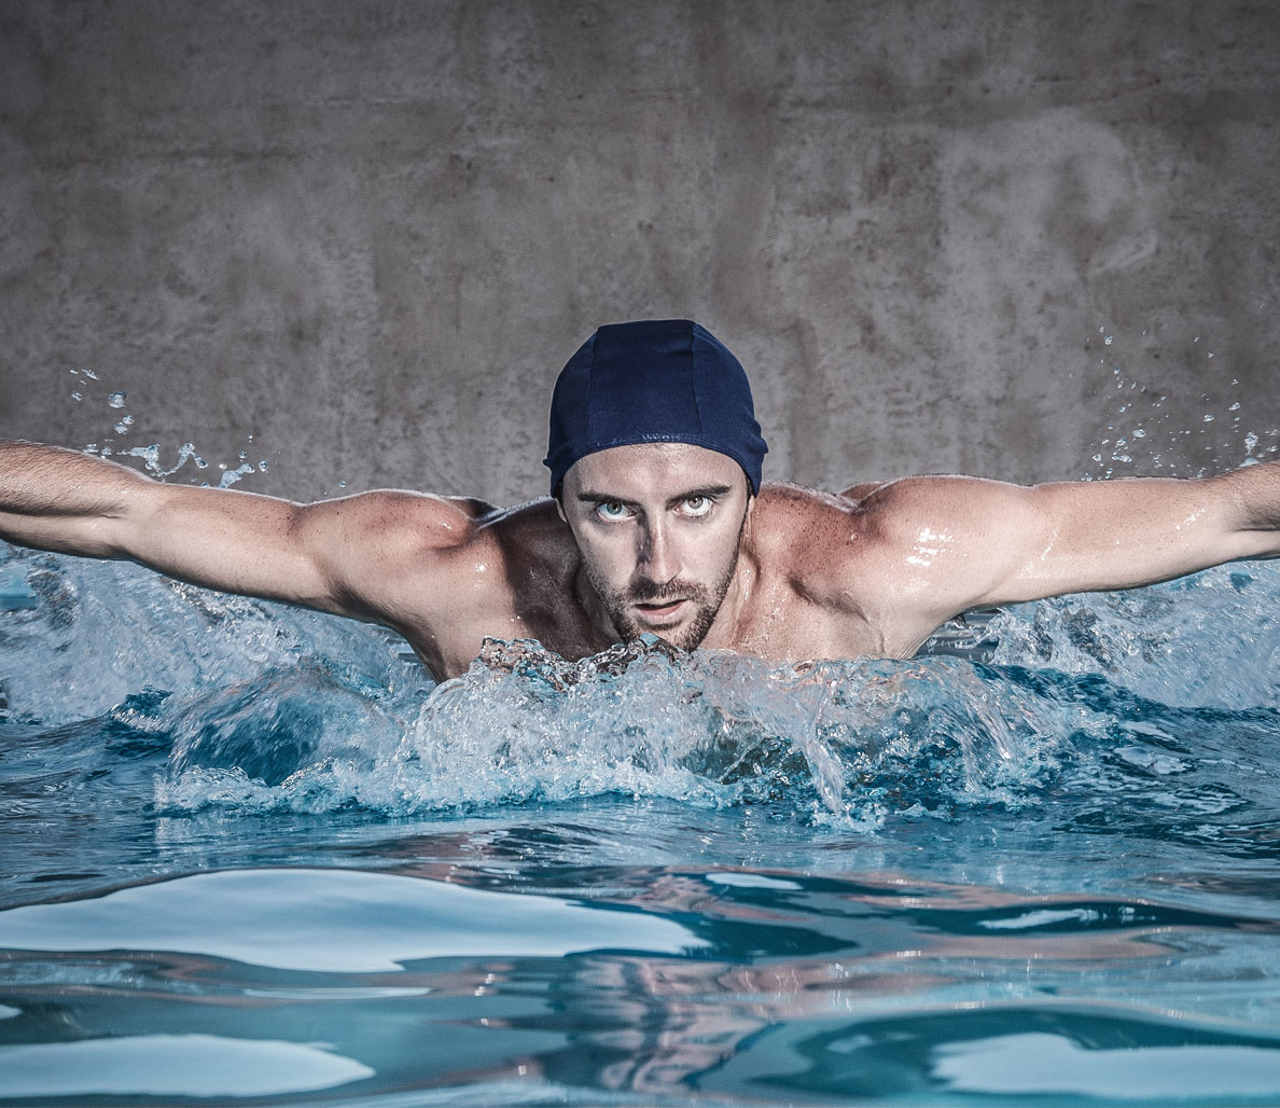 how to grow thicker facial hair - by exercising